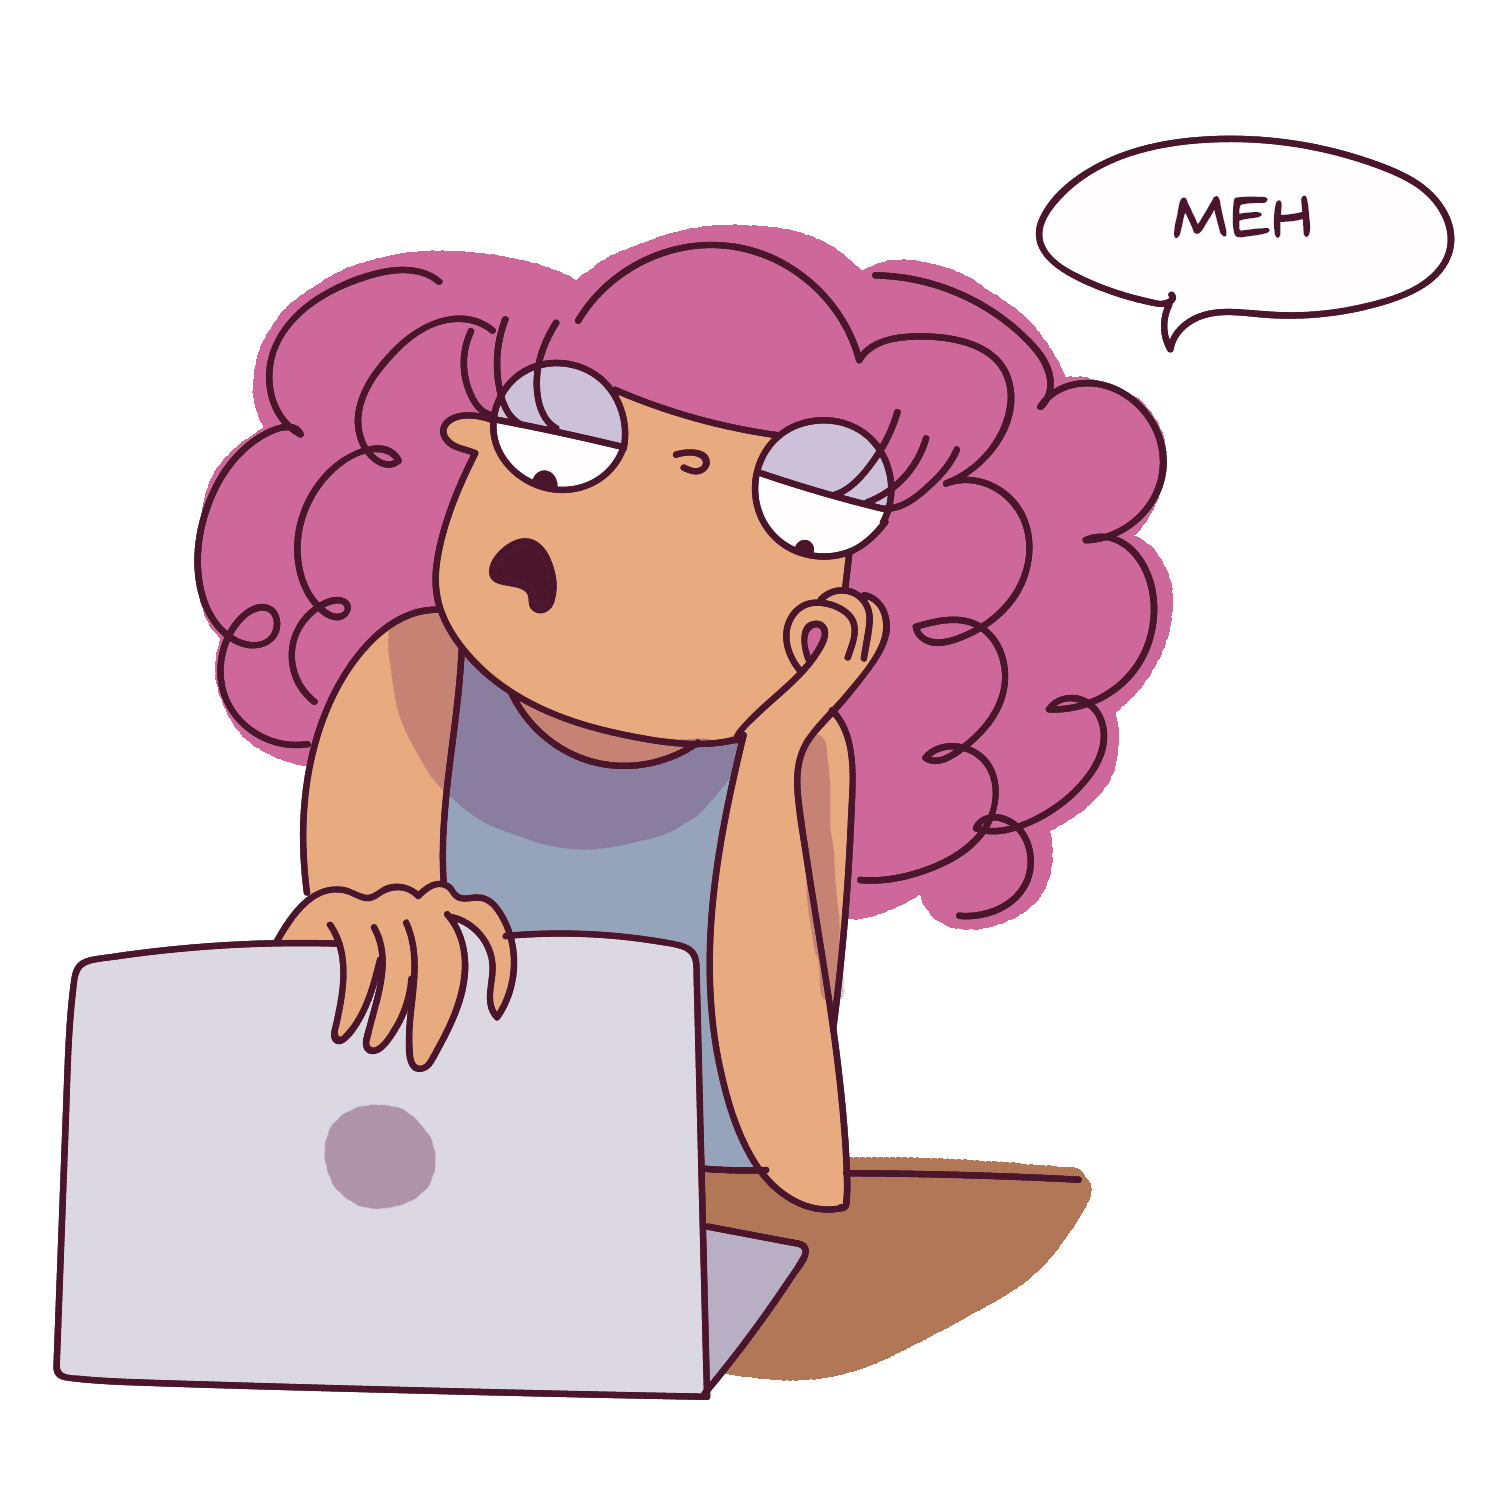 Take regular breaks to recharge yourself, otherwise you could get exhausted pretty quickly. Bored girl with laptop.